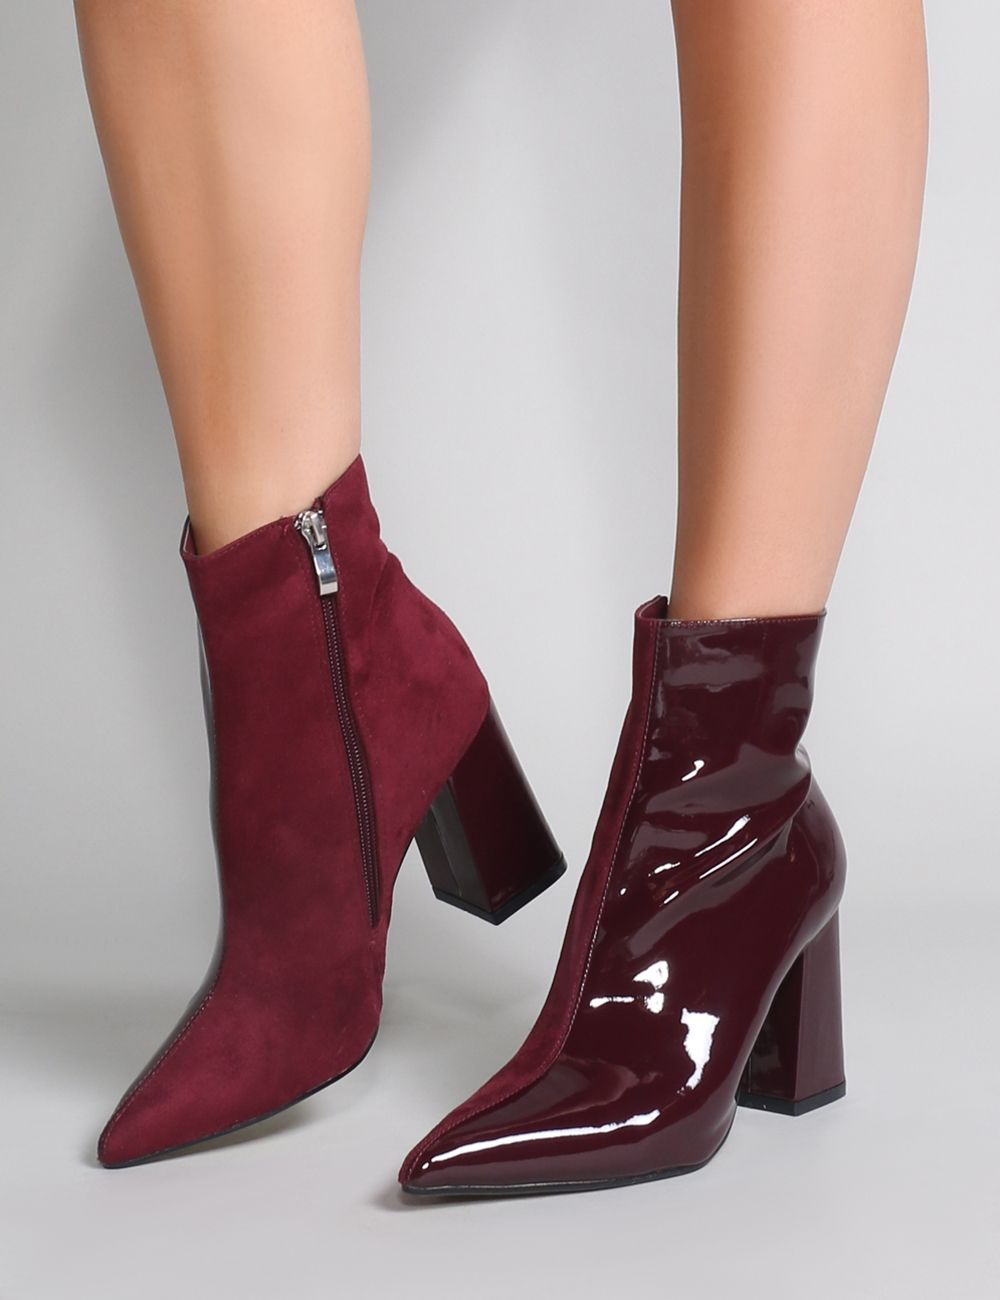 3582eecd9b2 Chaos Contrast Pointed Toe Ankle Boots in Burgundy Patent and Faux ...